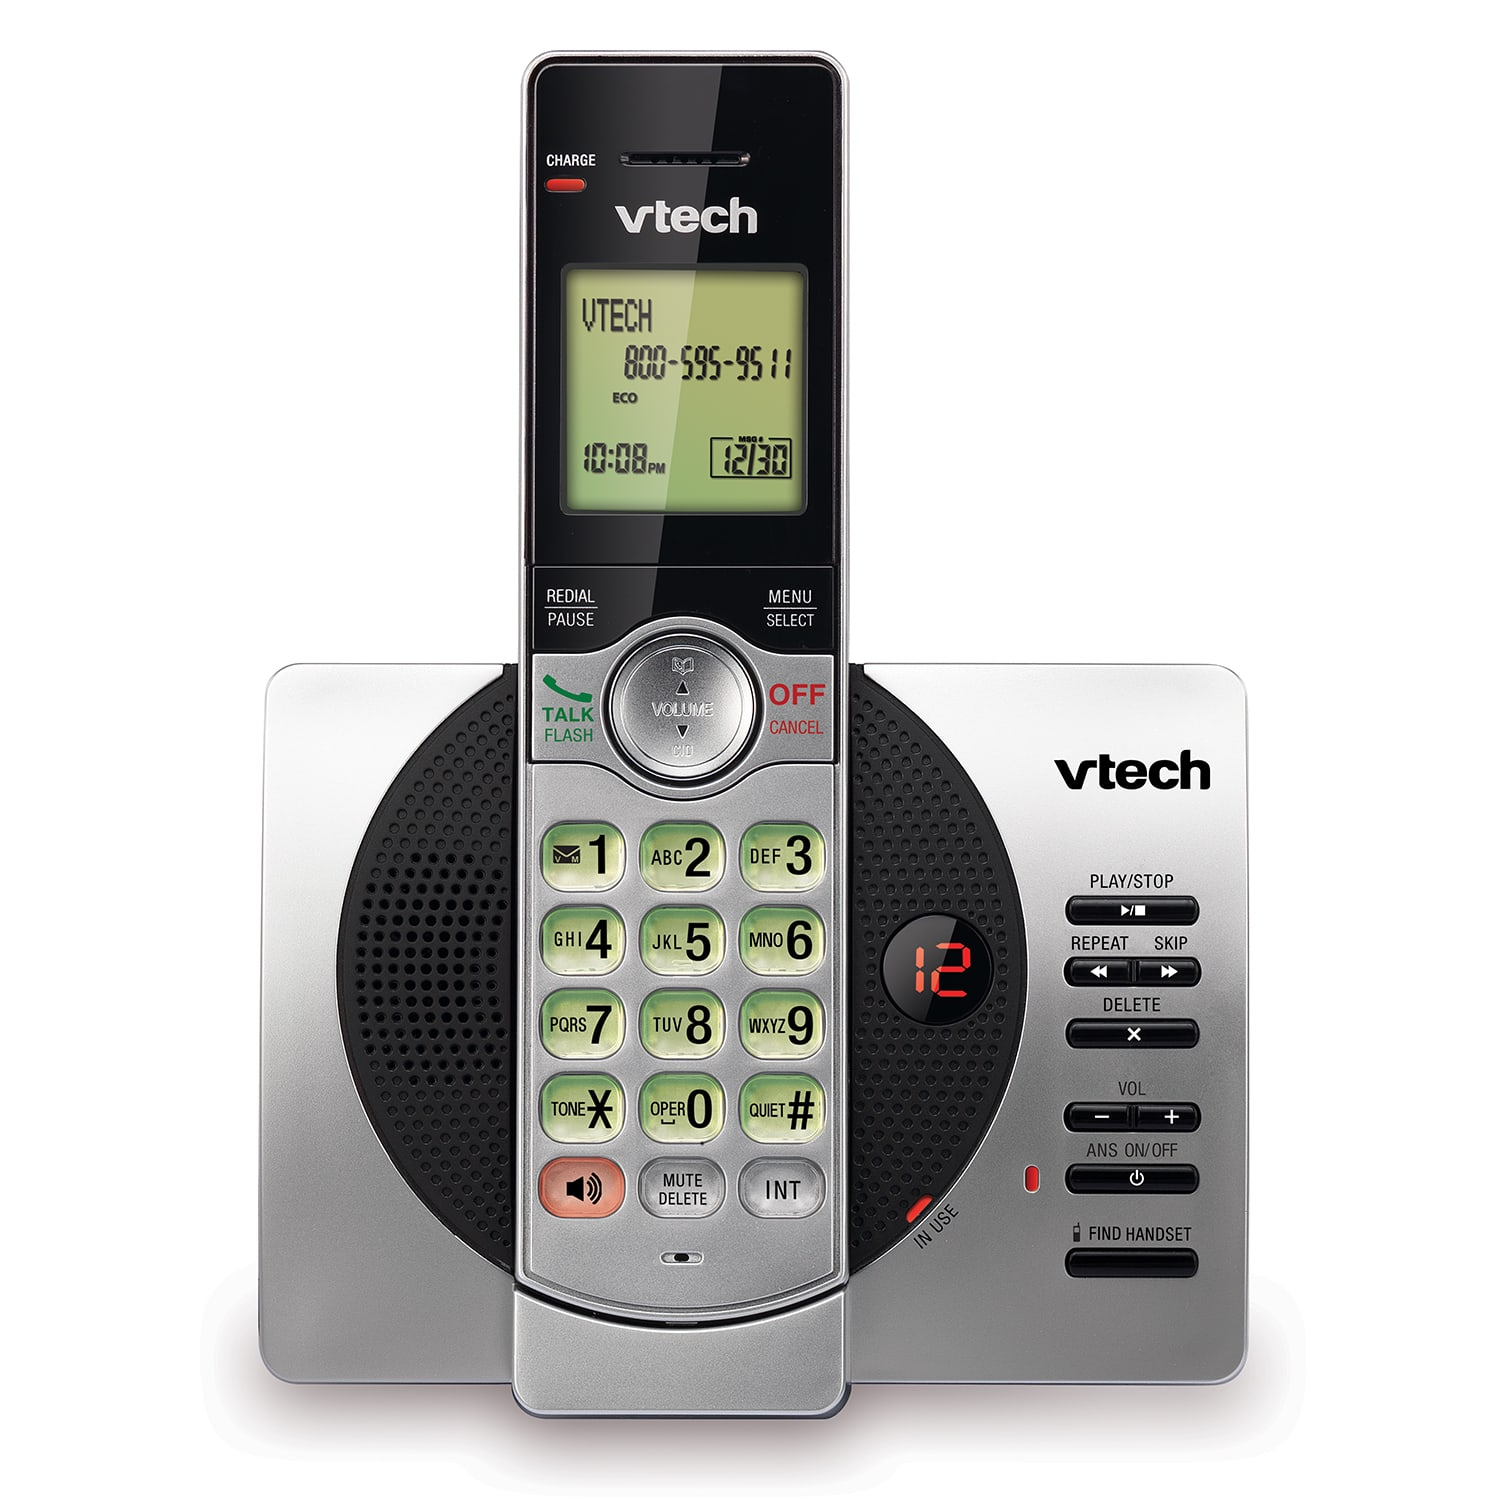 vtech phone troubleshooting out of range